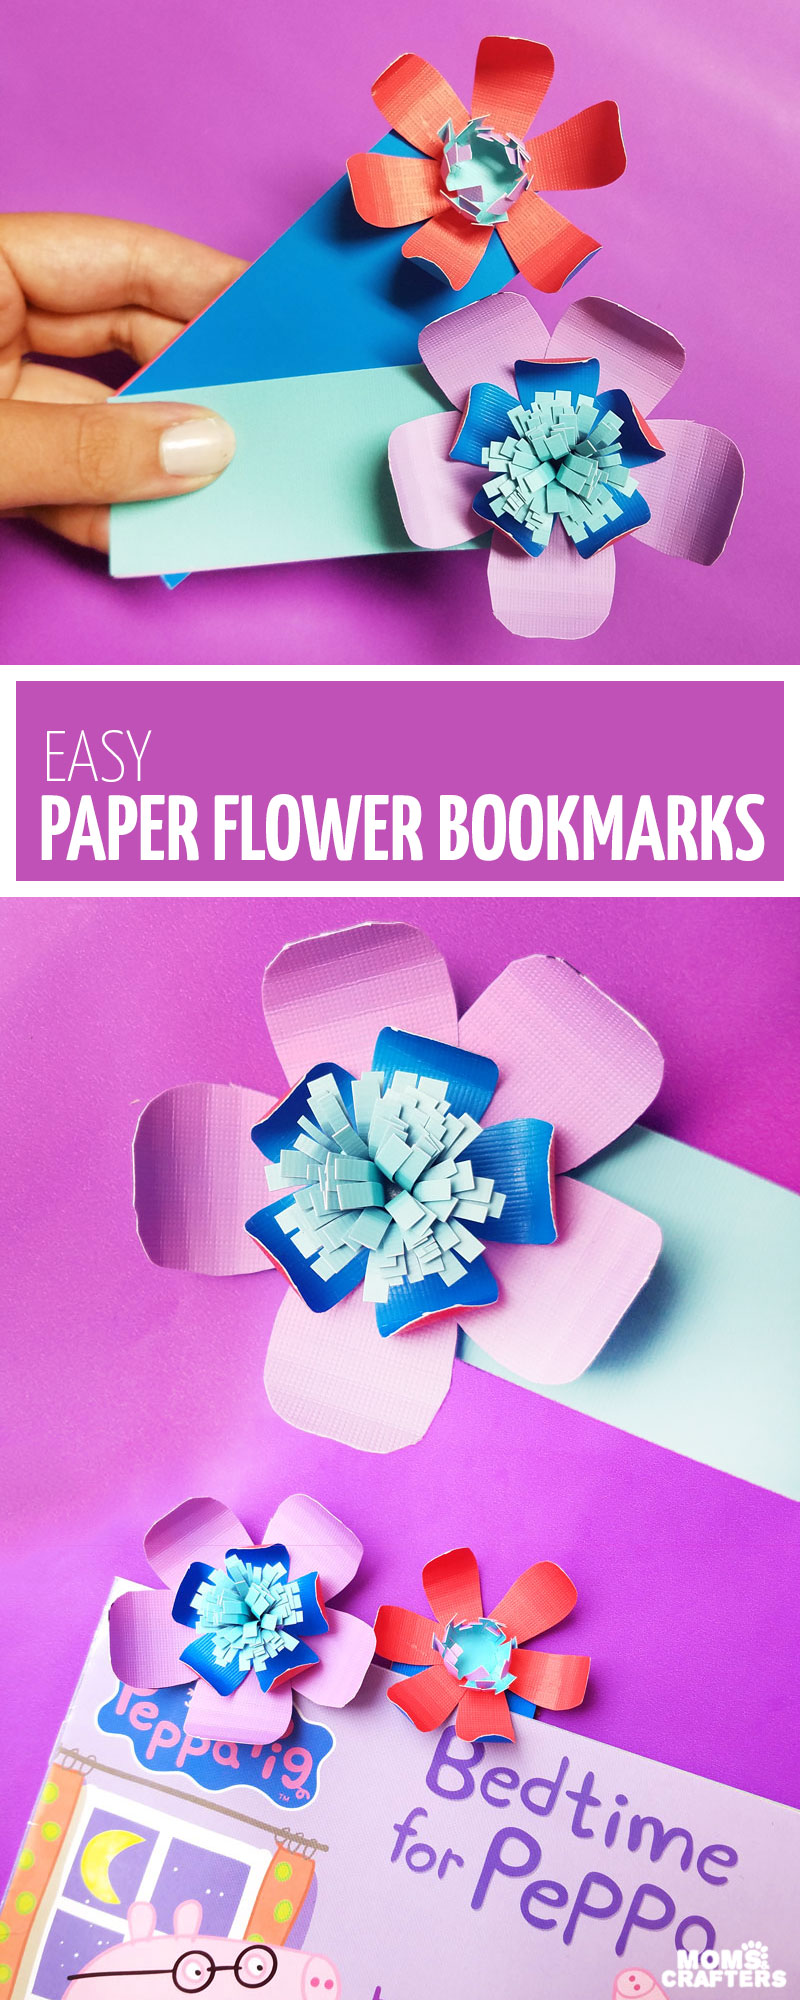 Craft these beautiful paper flower bookmarks - an easy paper craft for kids and teens! You'll love these easy DIY flowers made from cardstock and placing them on a bookmark helps kids love to read and promotes literacy.